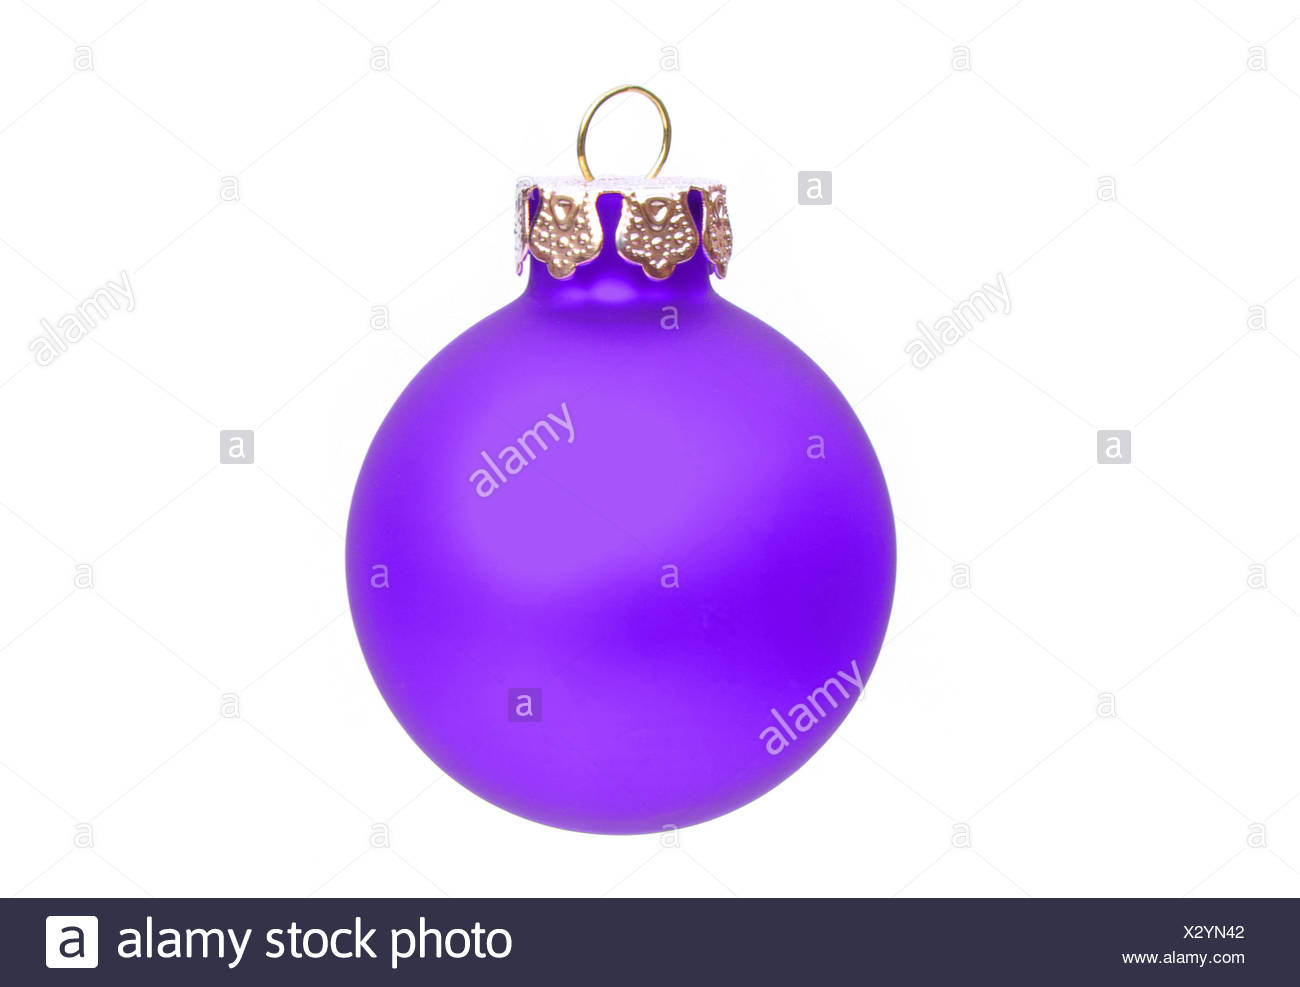 Weihnachtskugel freigestellt - christmas ball isolated 06 - Stock Image